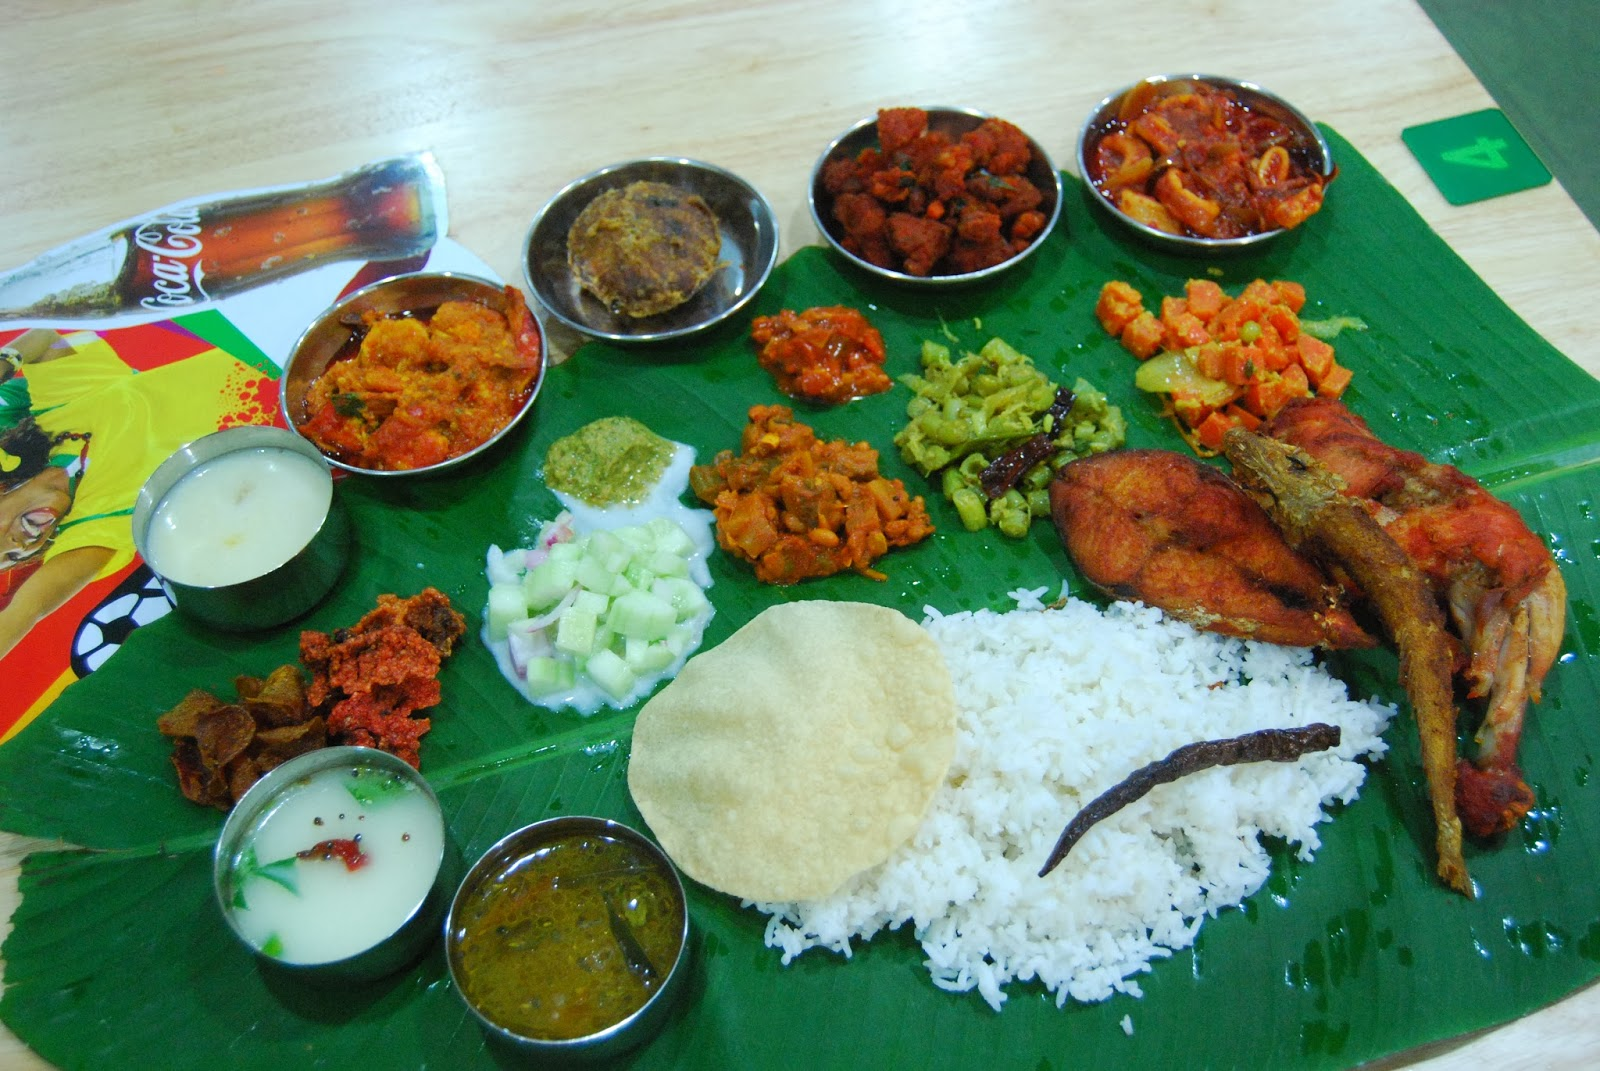 Malaysian indian food restaurant banana leaf rice for Authentic south indian cuisine